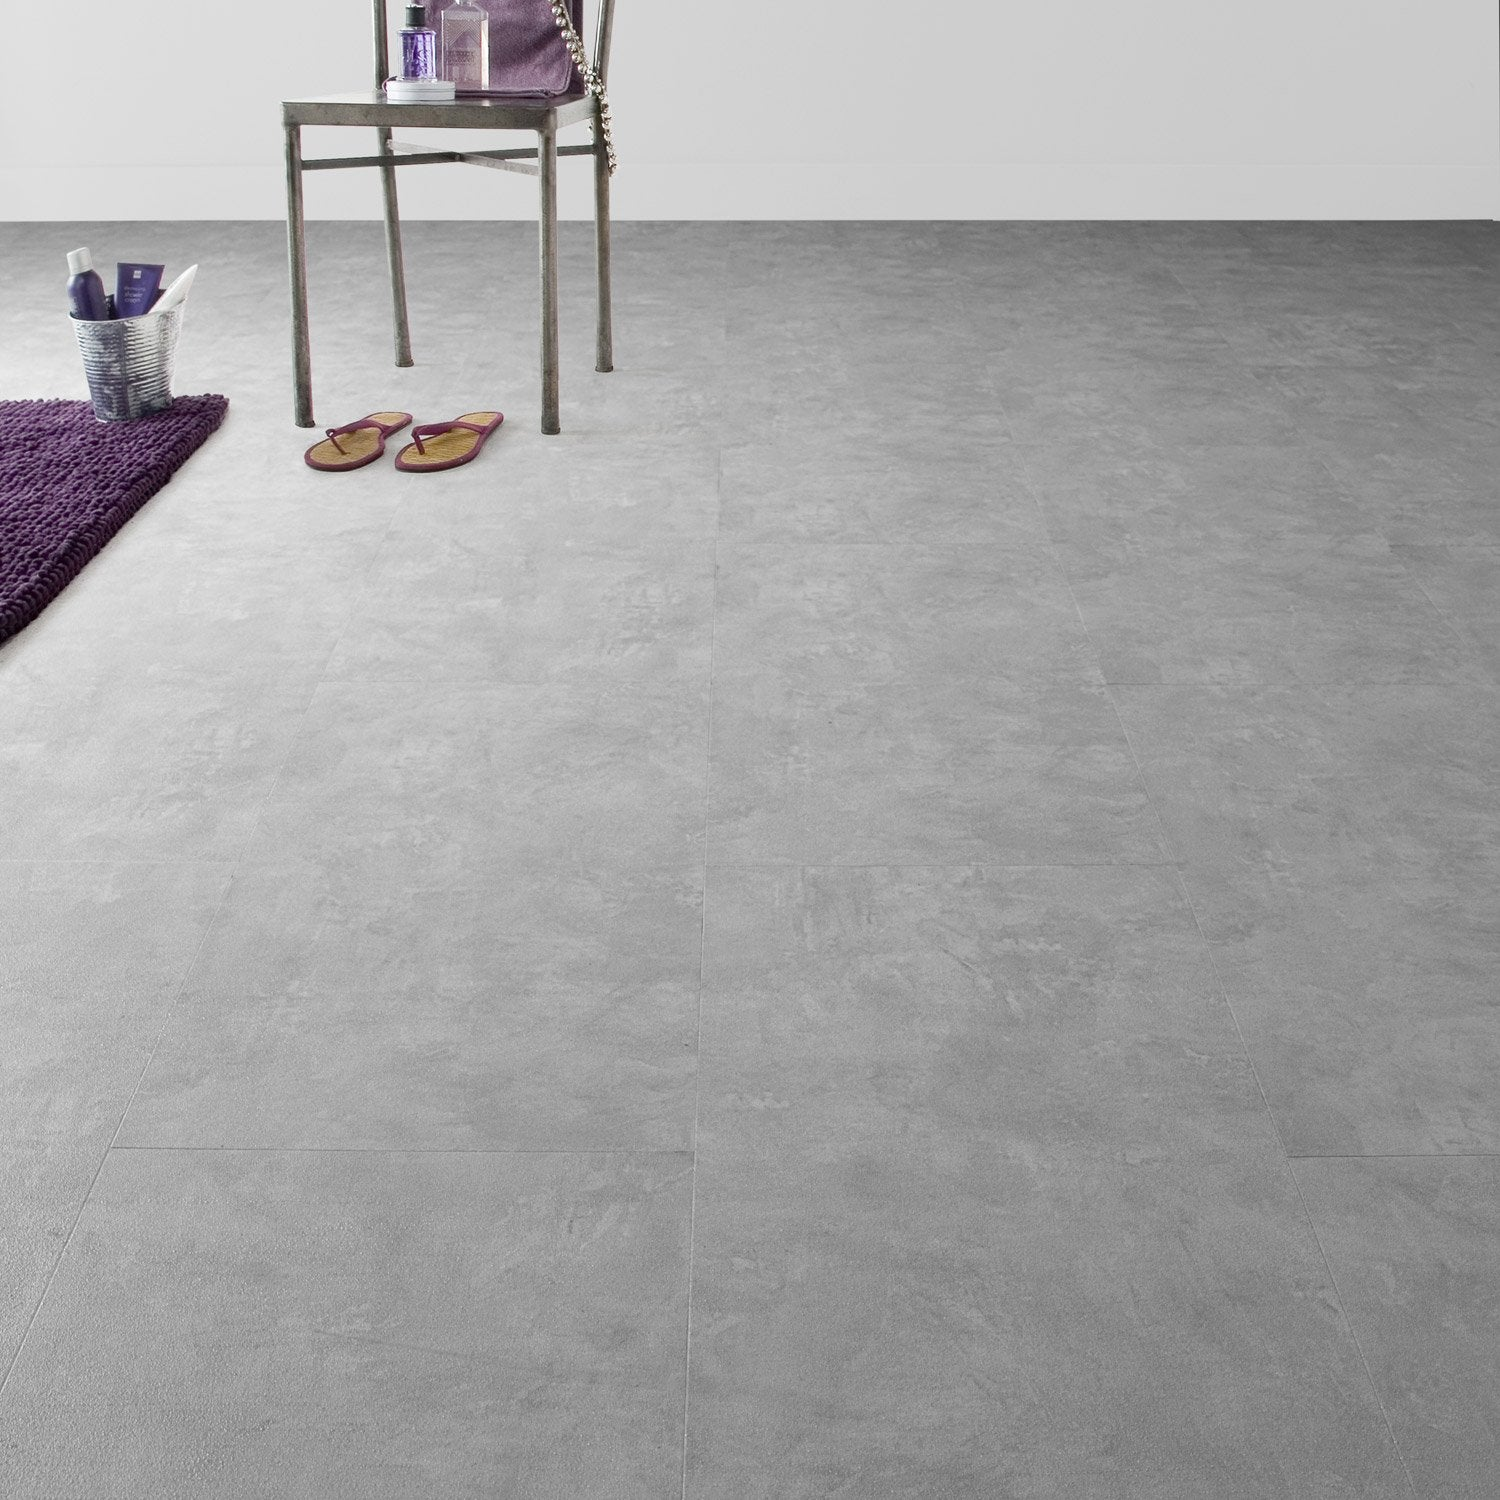 Dalle pvc clipsable gris industry clear senso lock gerflor - Sol pvc clipsable leroy merlin ...